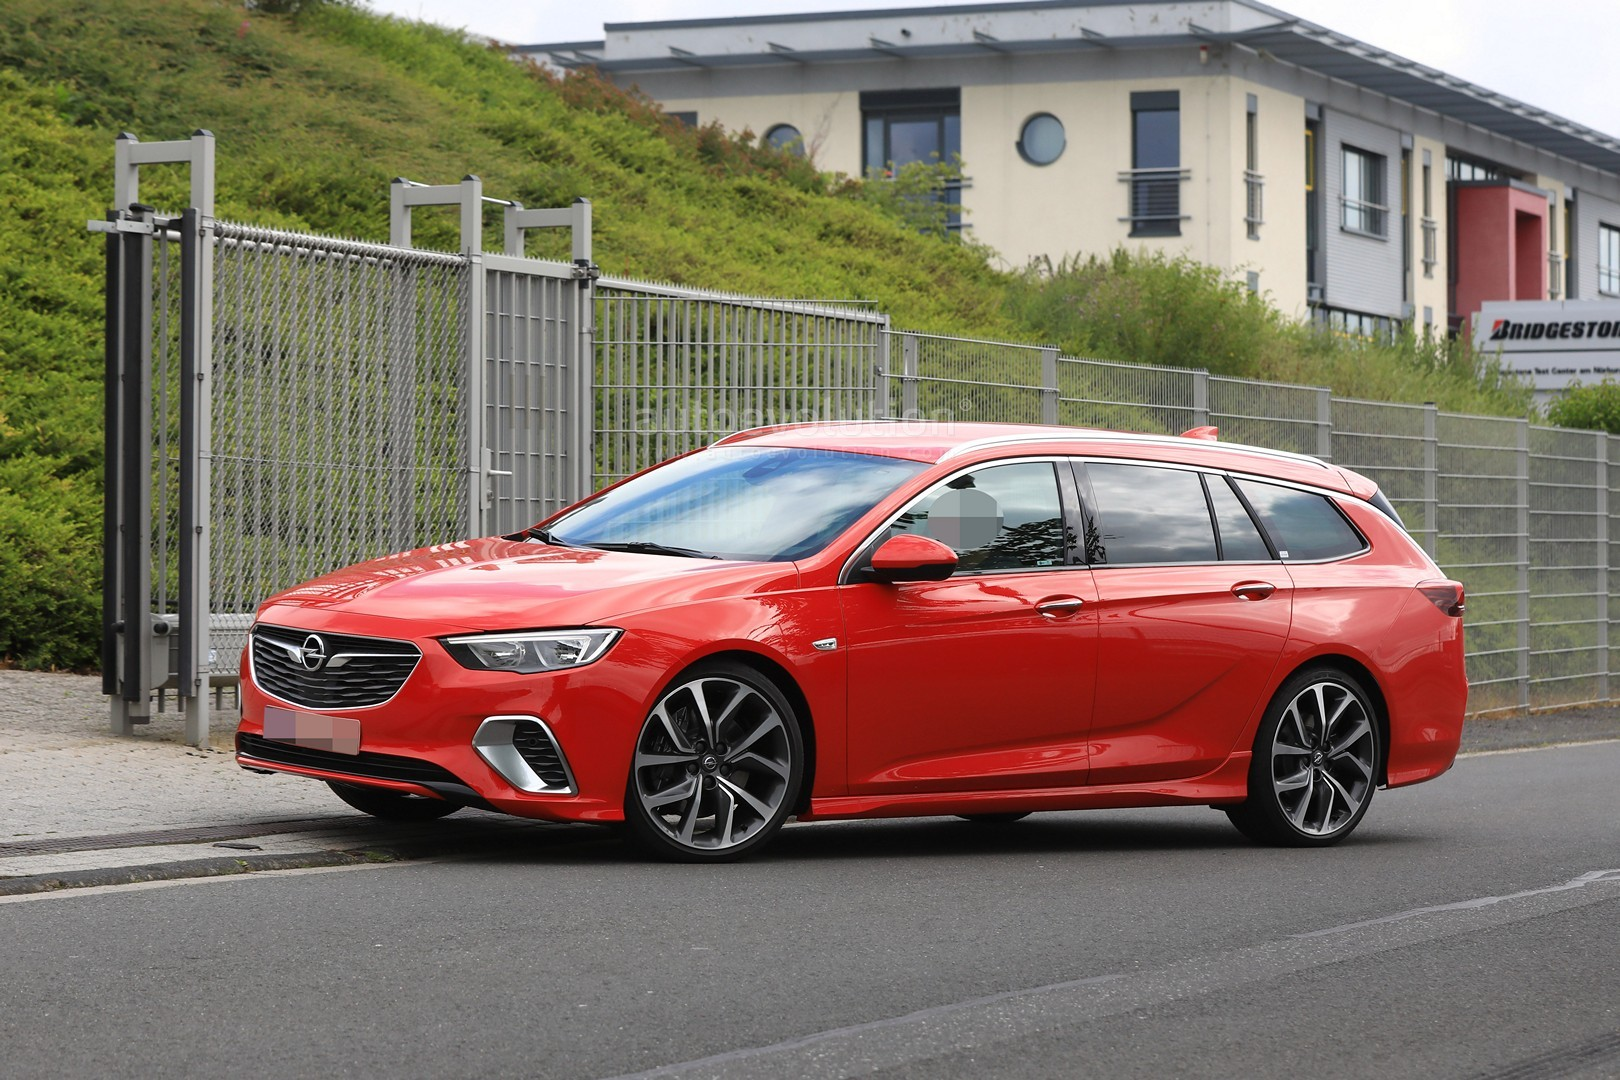 spyshots 2018 opel insignia gsi wagon drops disguise. Black Bedroom Furniture Sets. Home Design Ideas